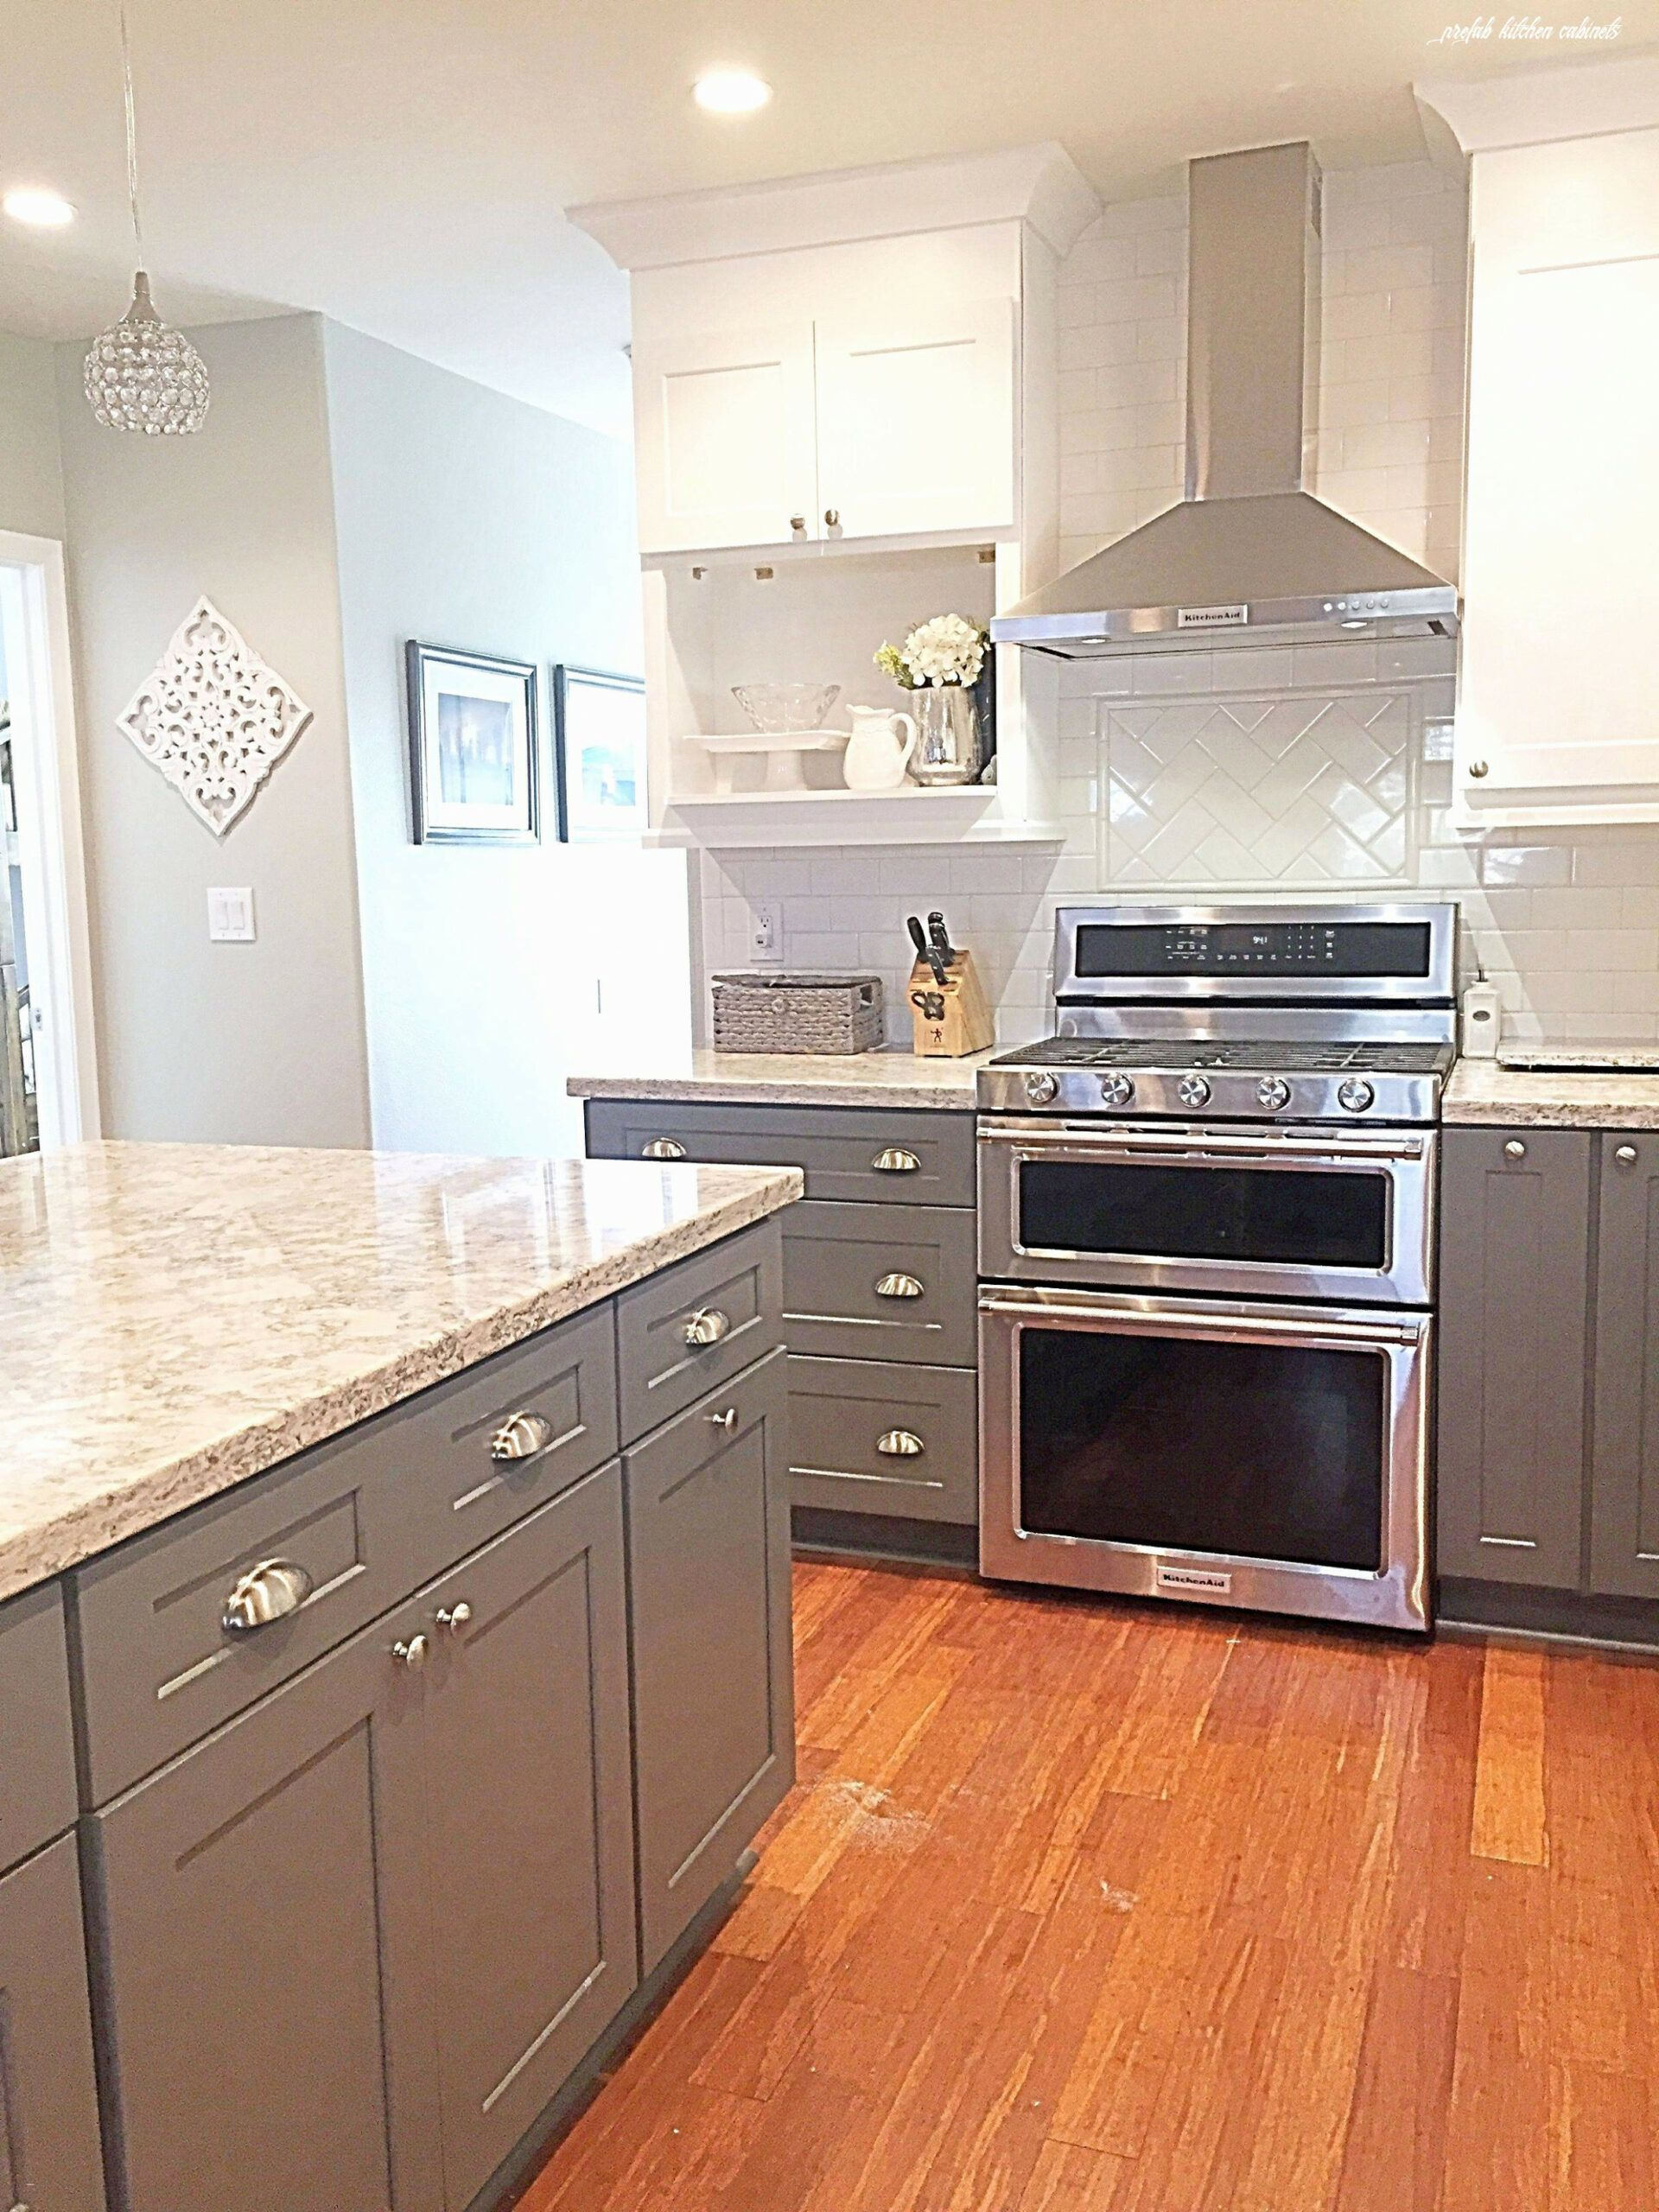 Now Is The Time For You To Know The Truth About Prefab Kitchen Cabinets Cost Of Kitchen Cabinets Home Depot Kitchen Kitchen Design